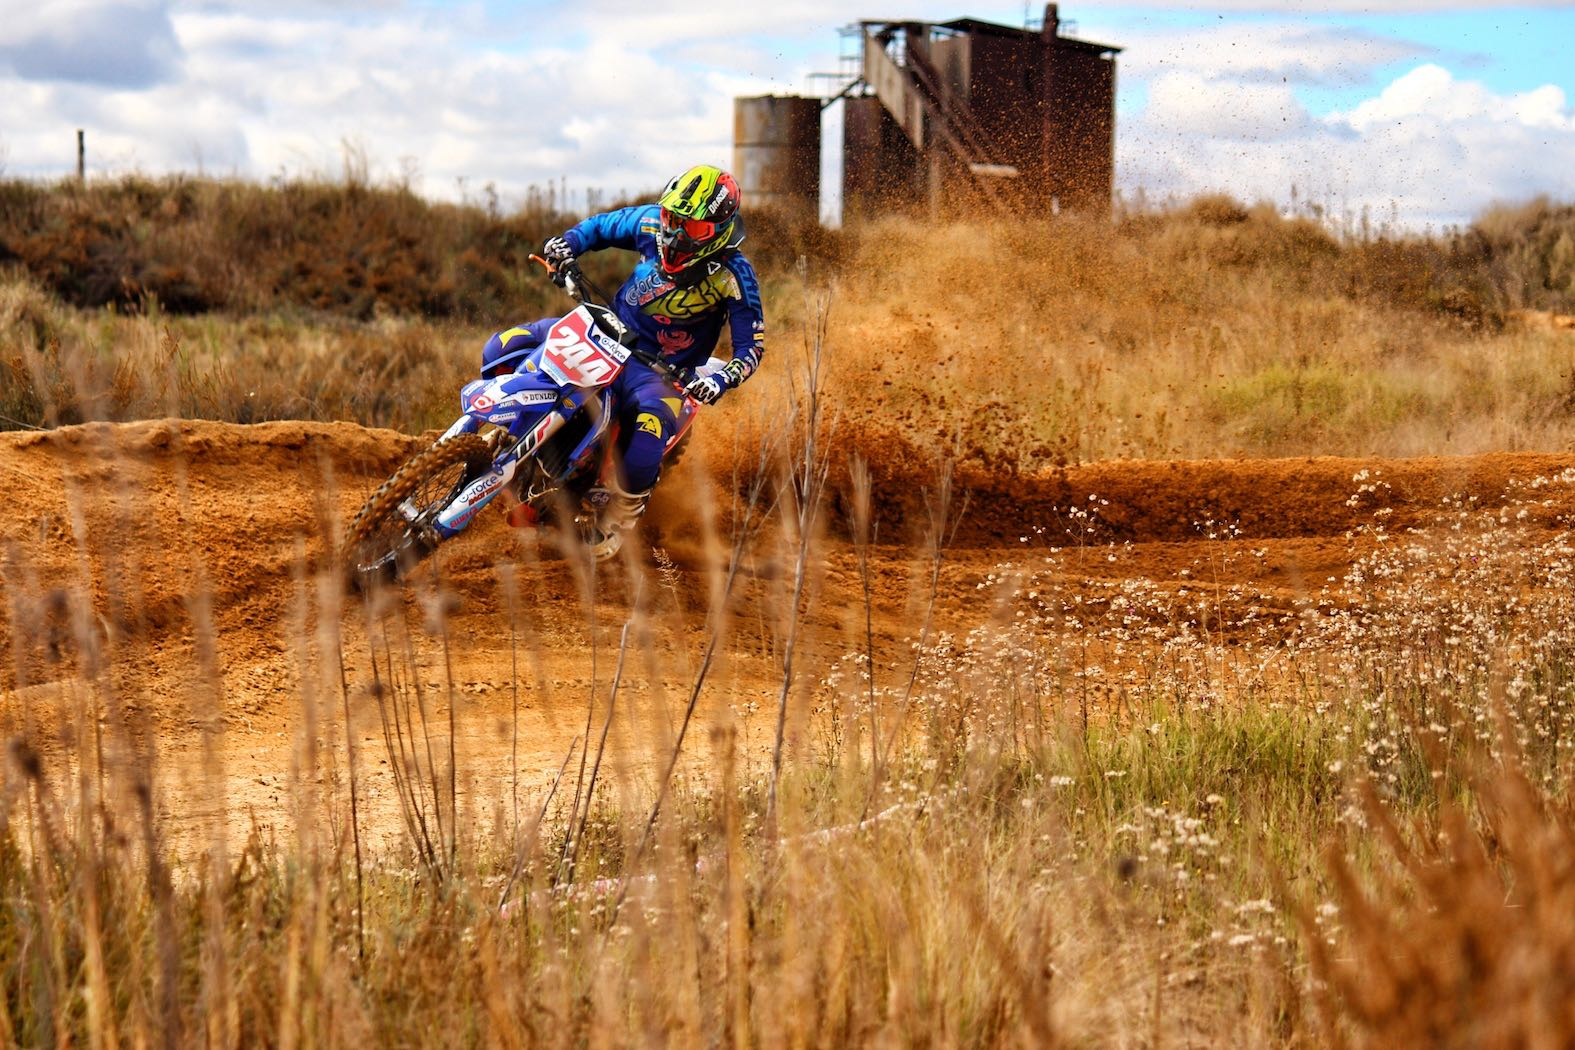 Nanda Clowes riding at Sandtrax in Sasolburg